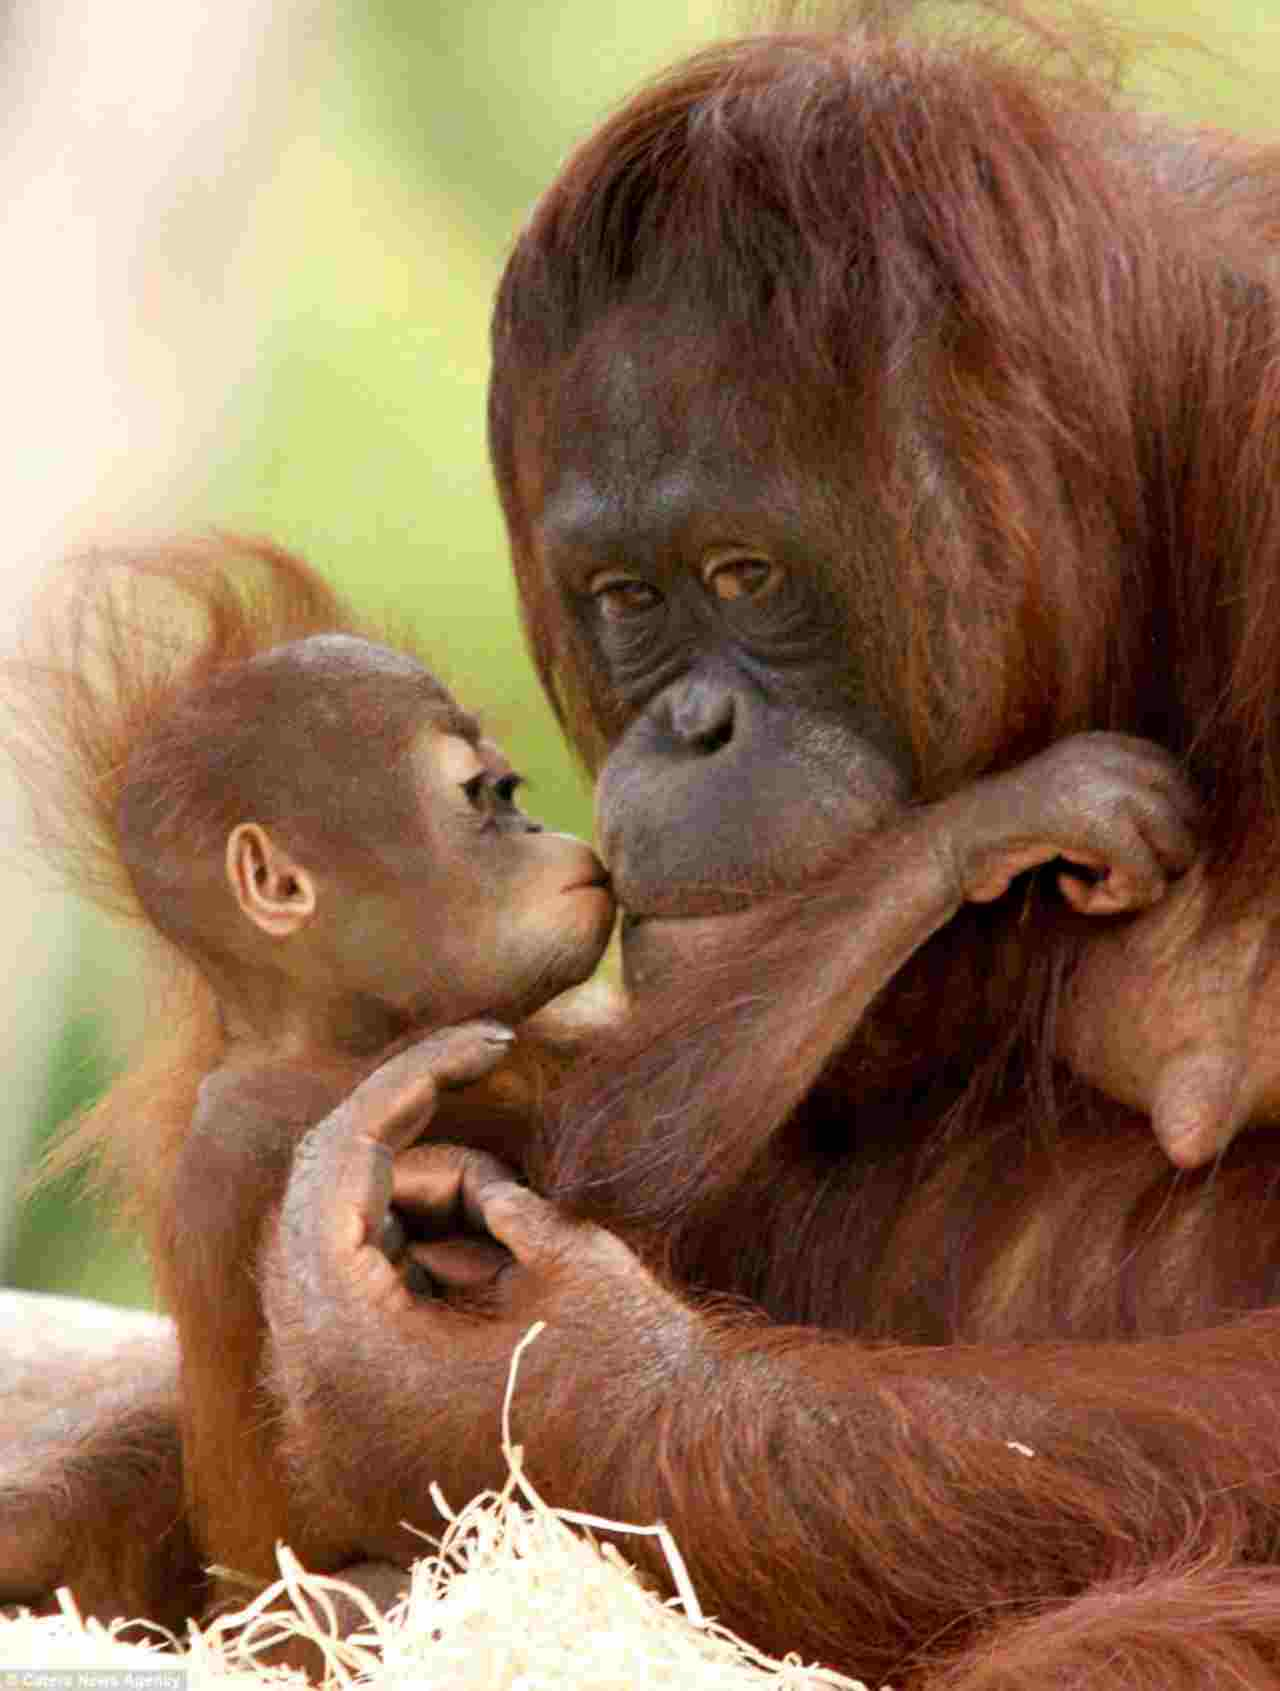 10 Exciting Facts about Orangutans